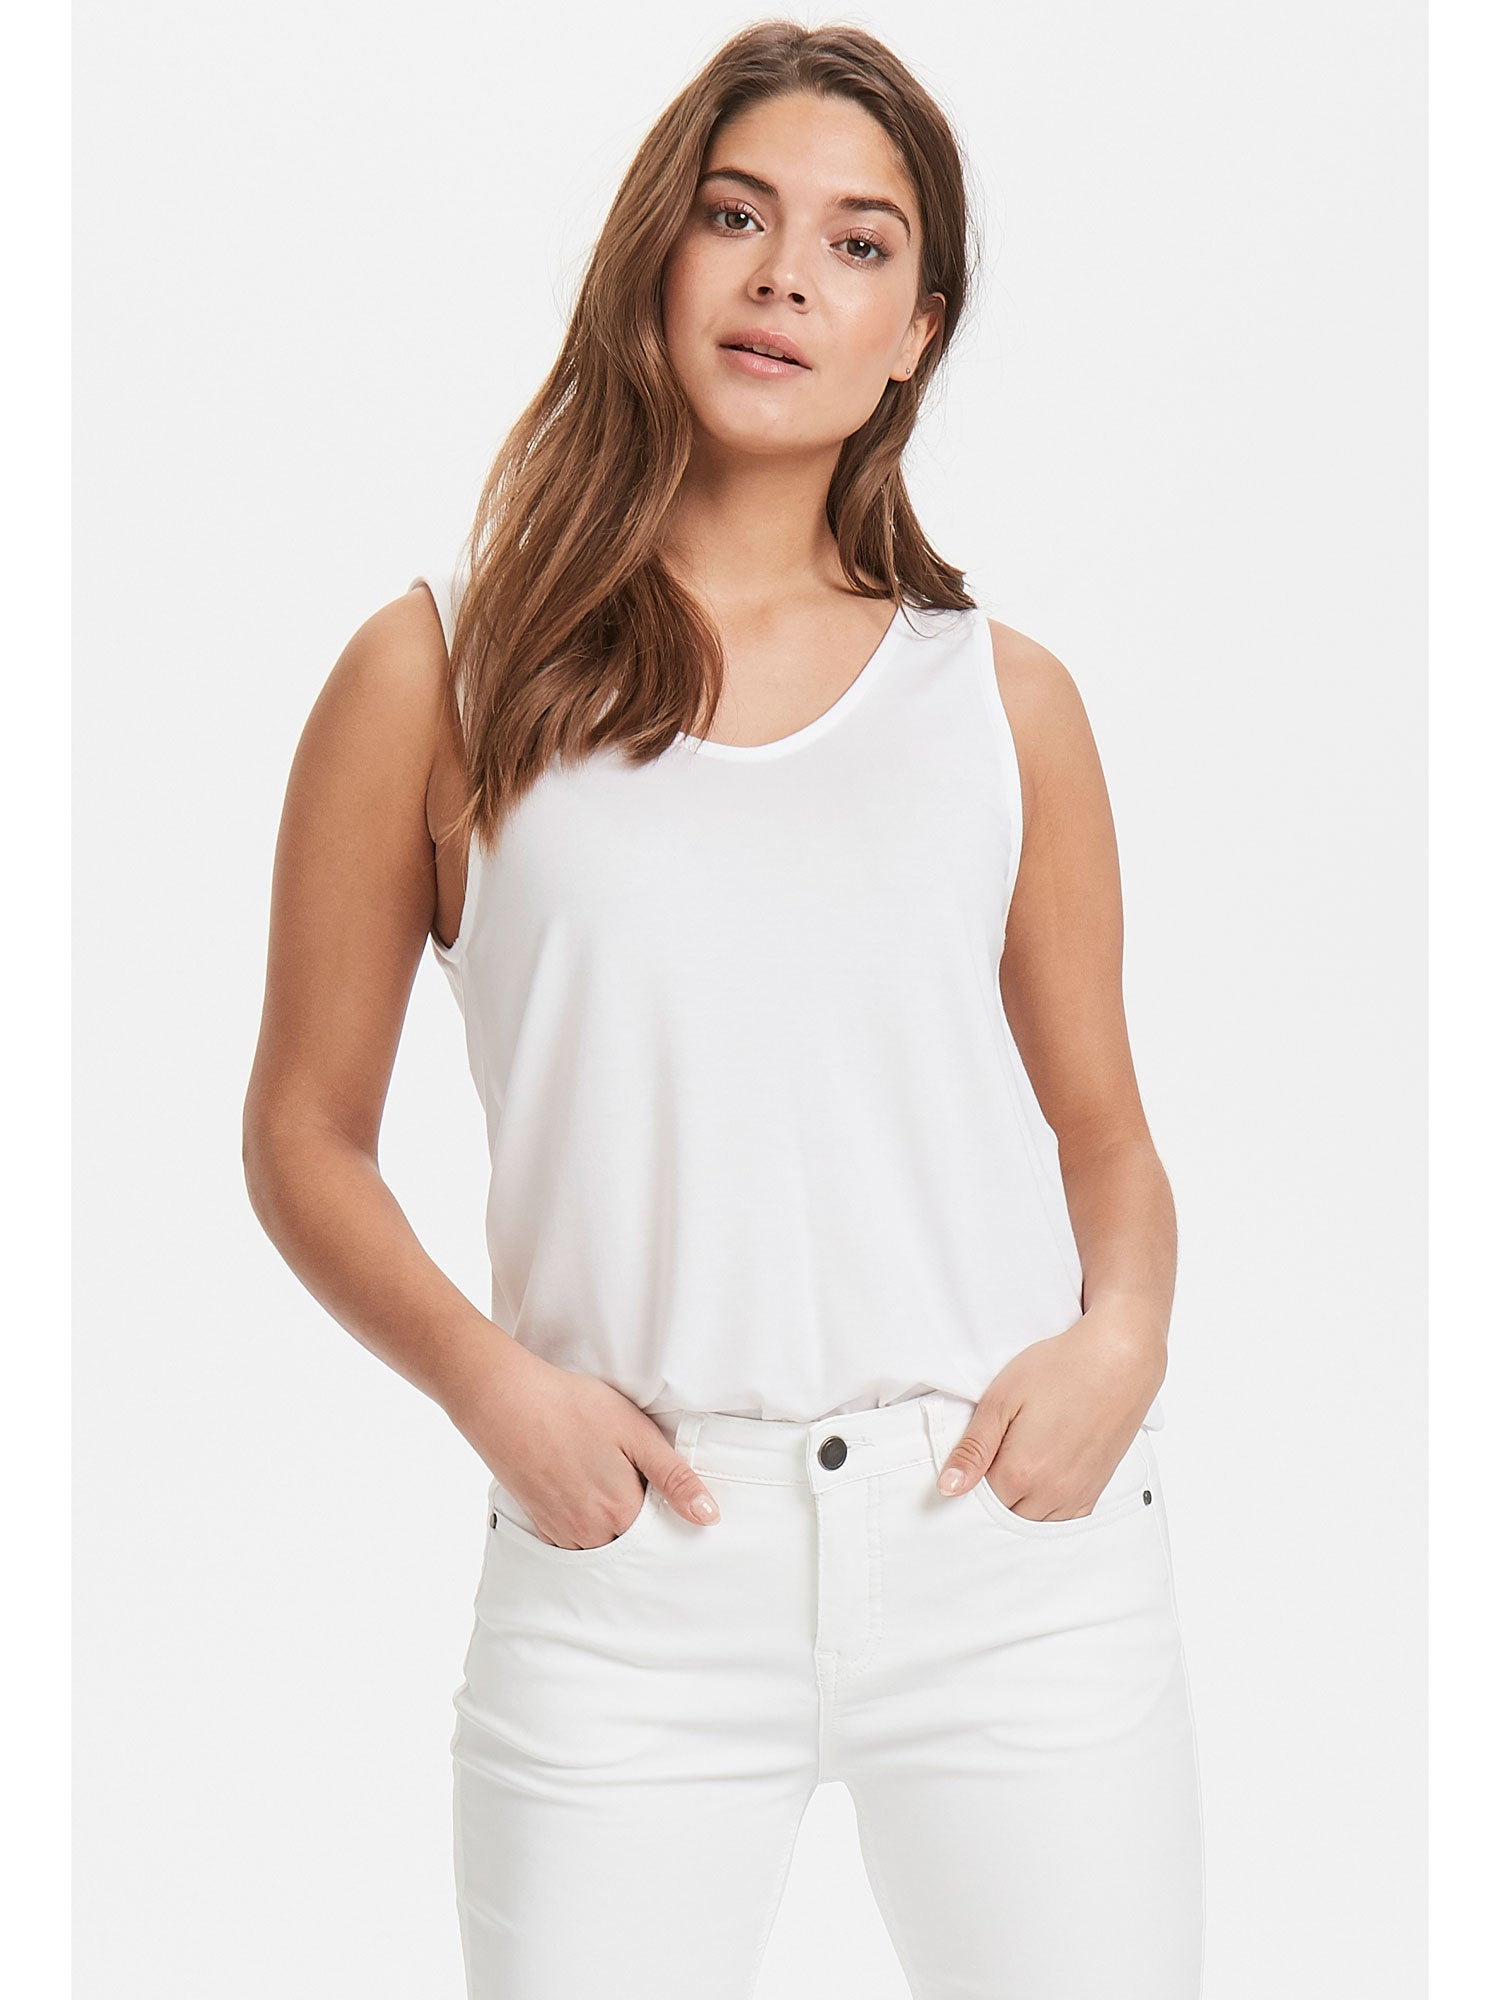 Image of B Young ByRexima Tank Top White